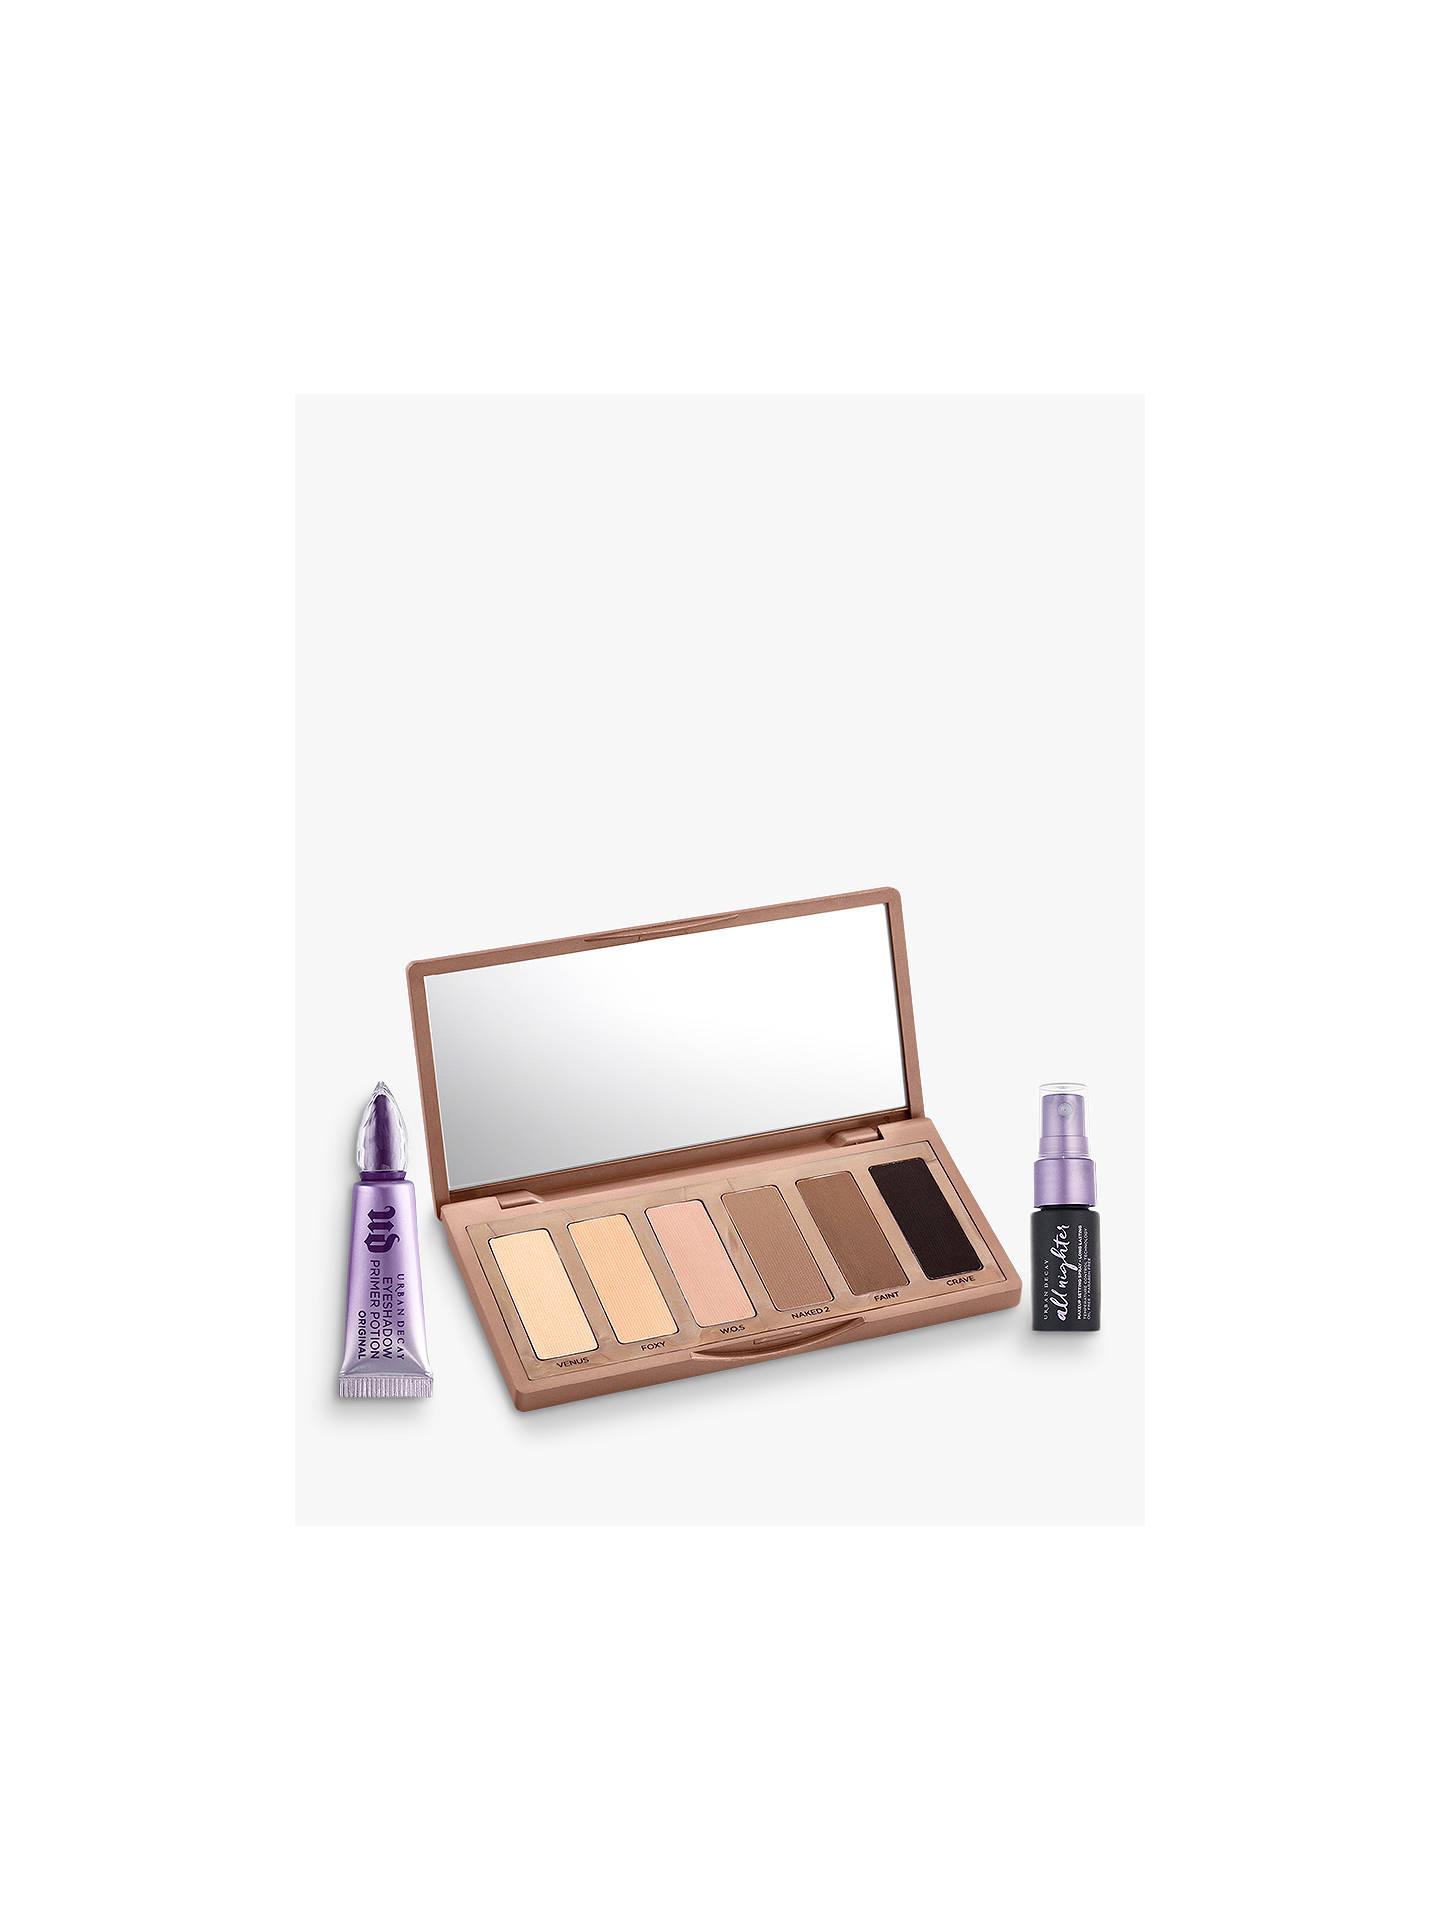 Urban Decay Basics Eyeshadow